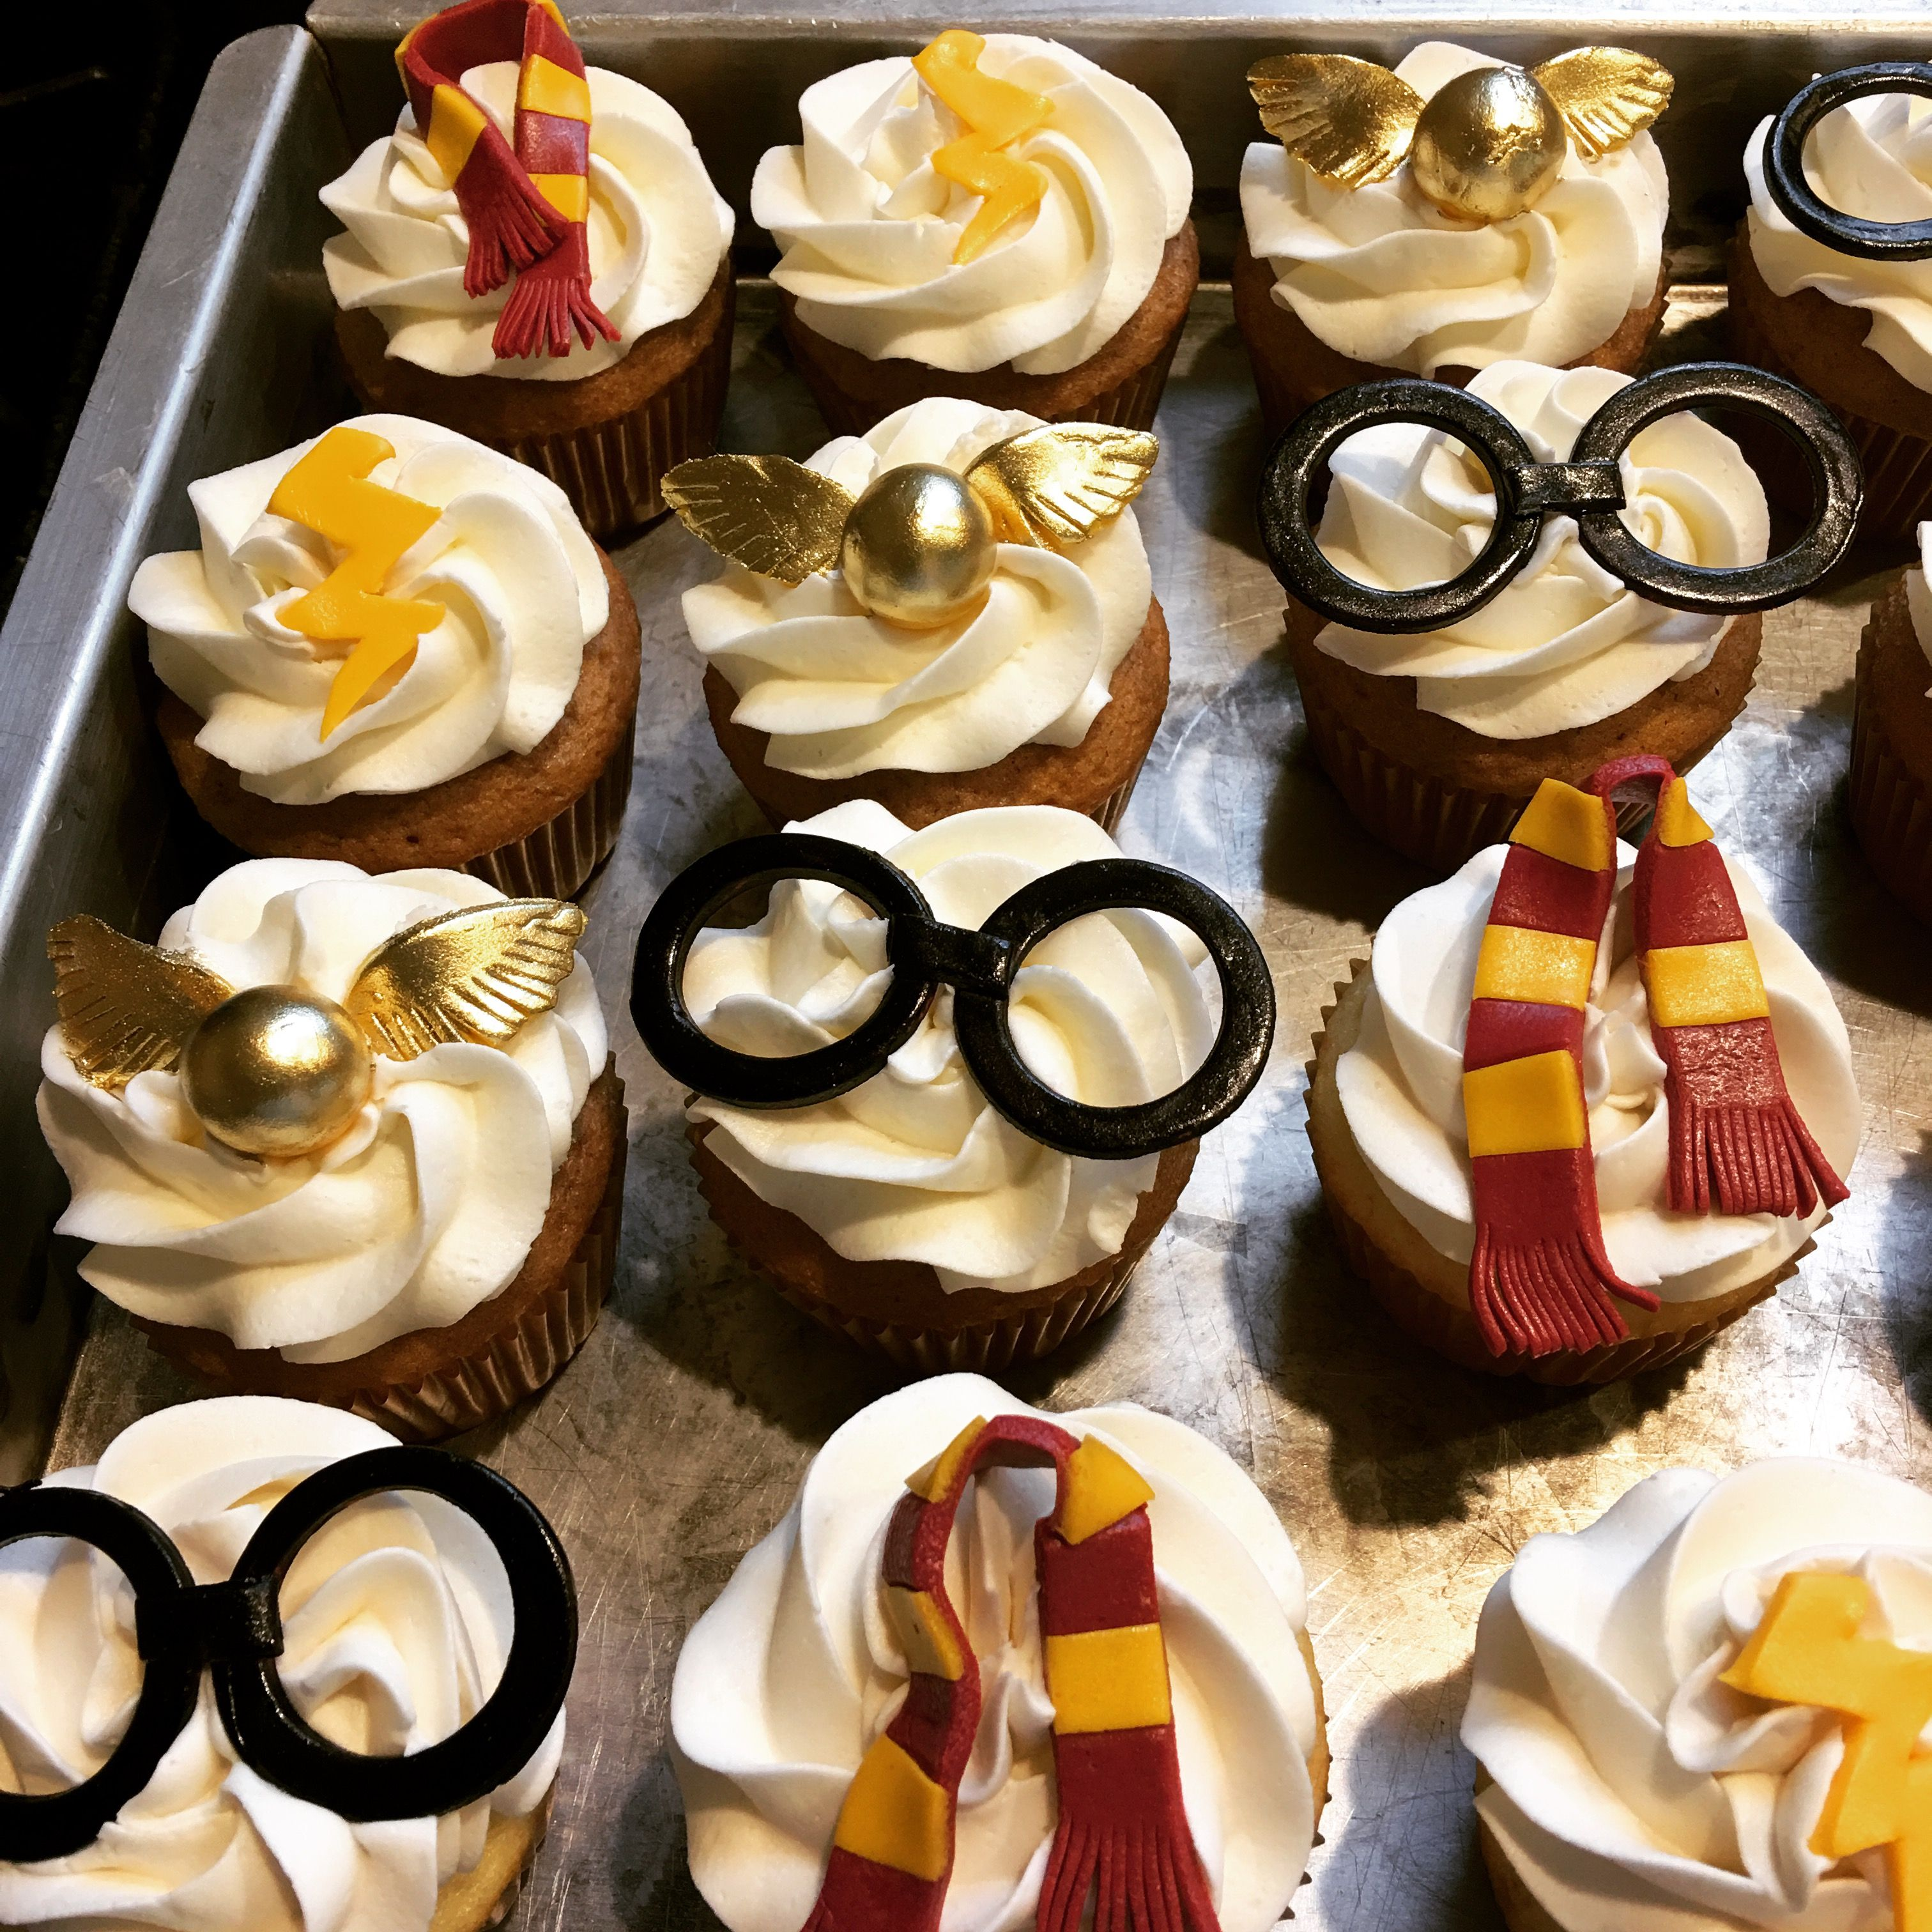 harry potter cupcakes my cakes pinterest tortendeko. Black Bedroom Furniture Sets. Home Design Ideas